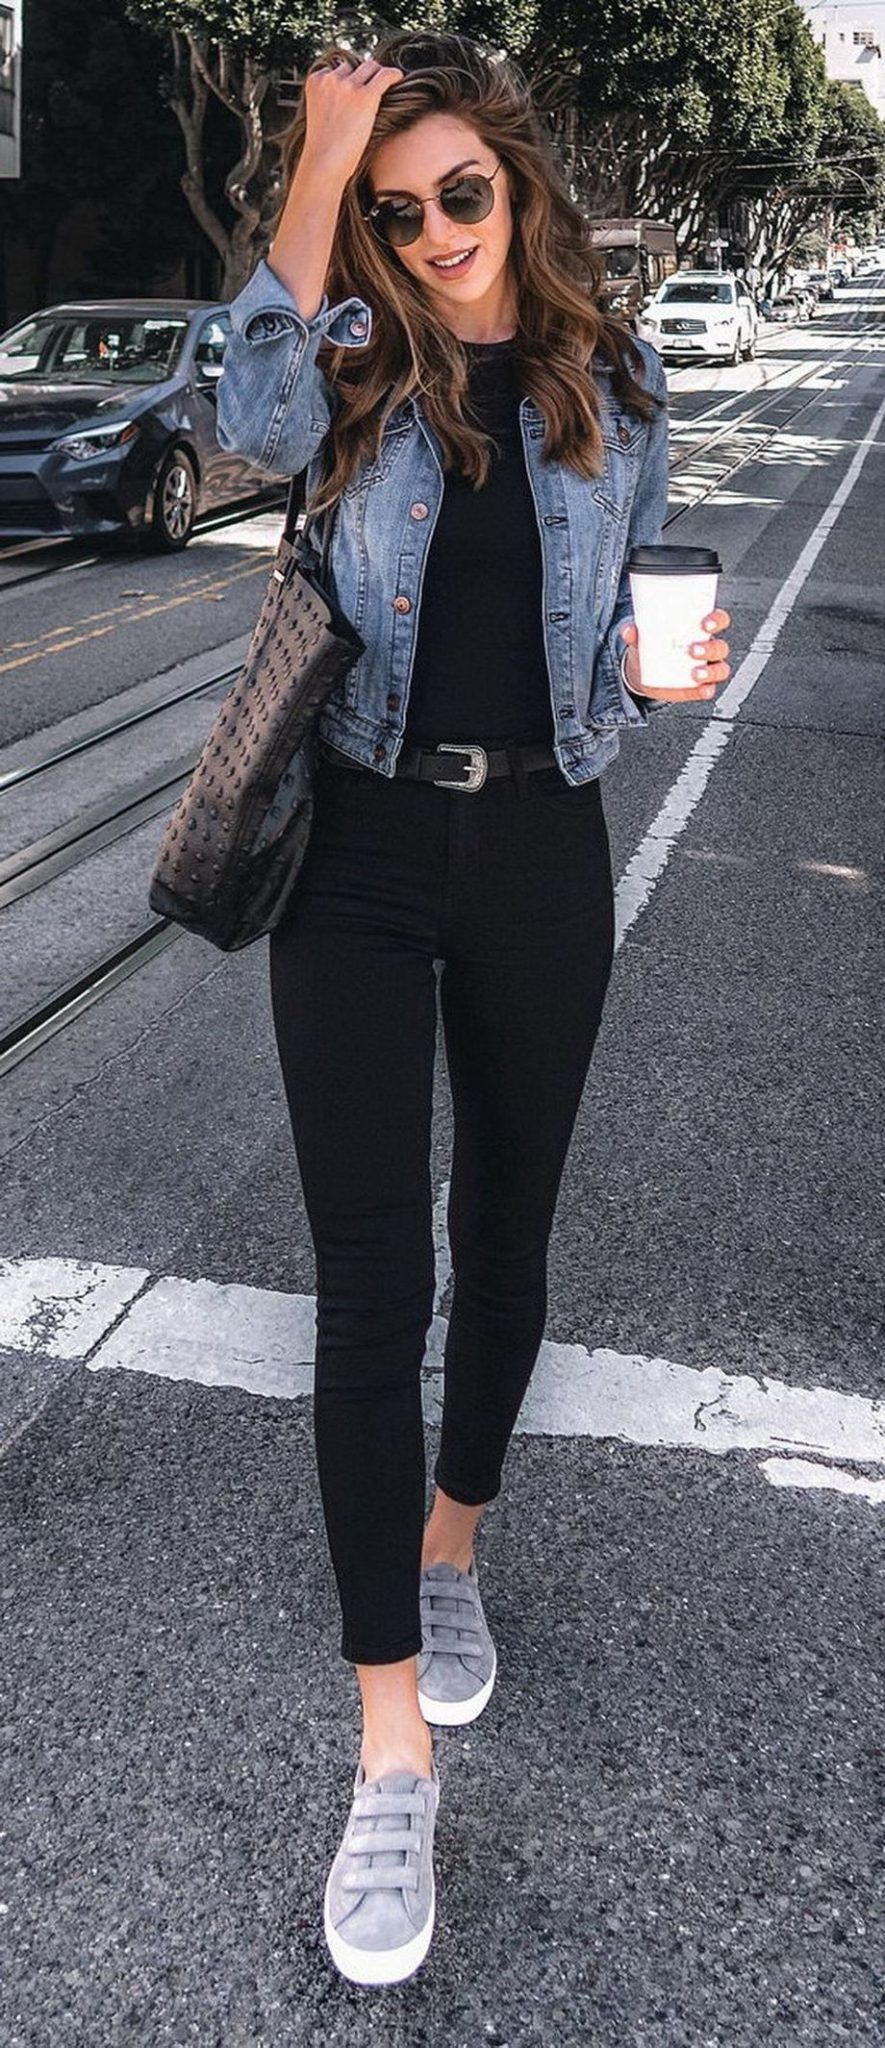 Denim Jacket Outfits Inspirations For Girl 23 Fashion Best